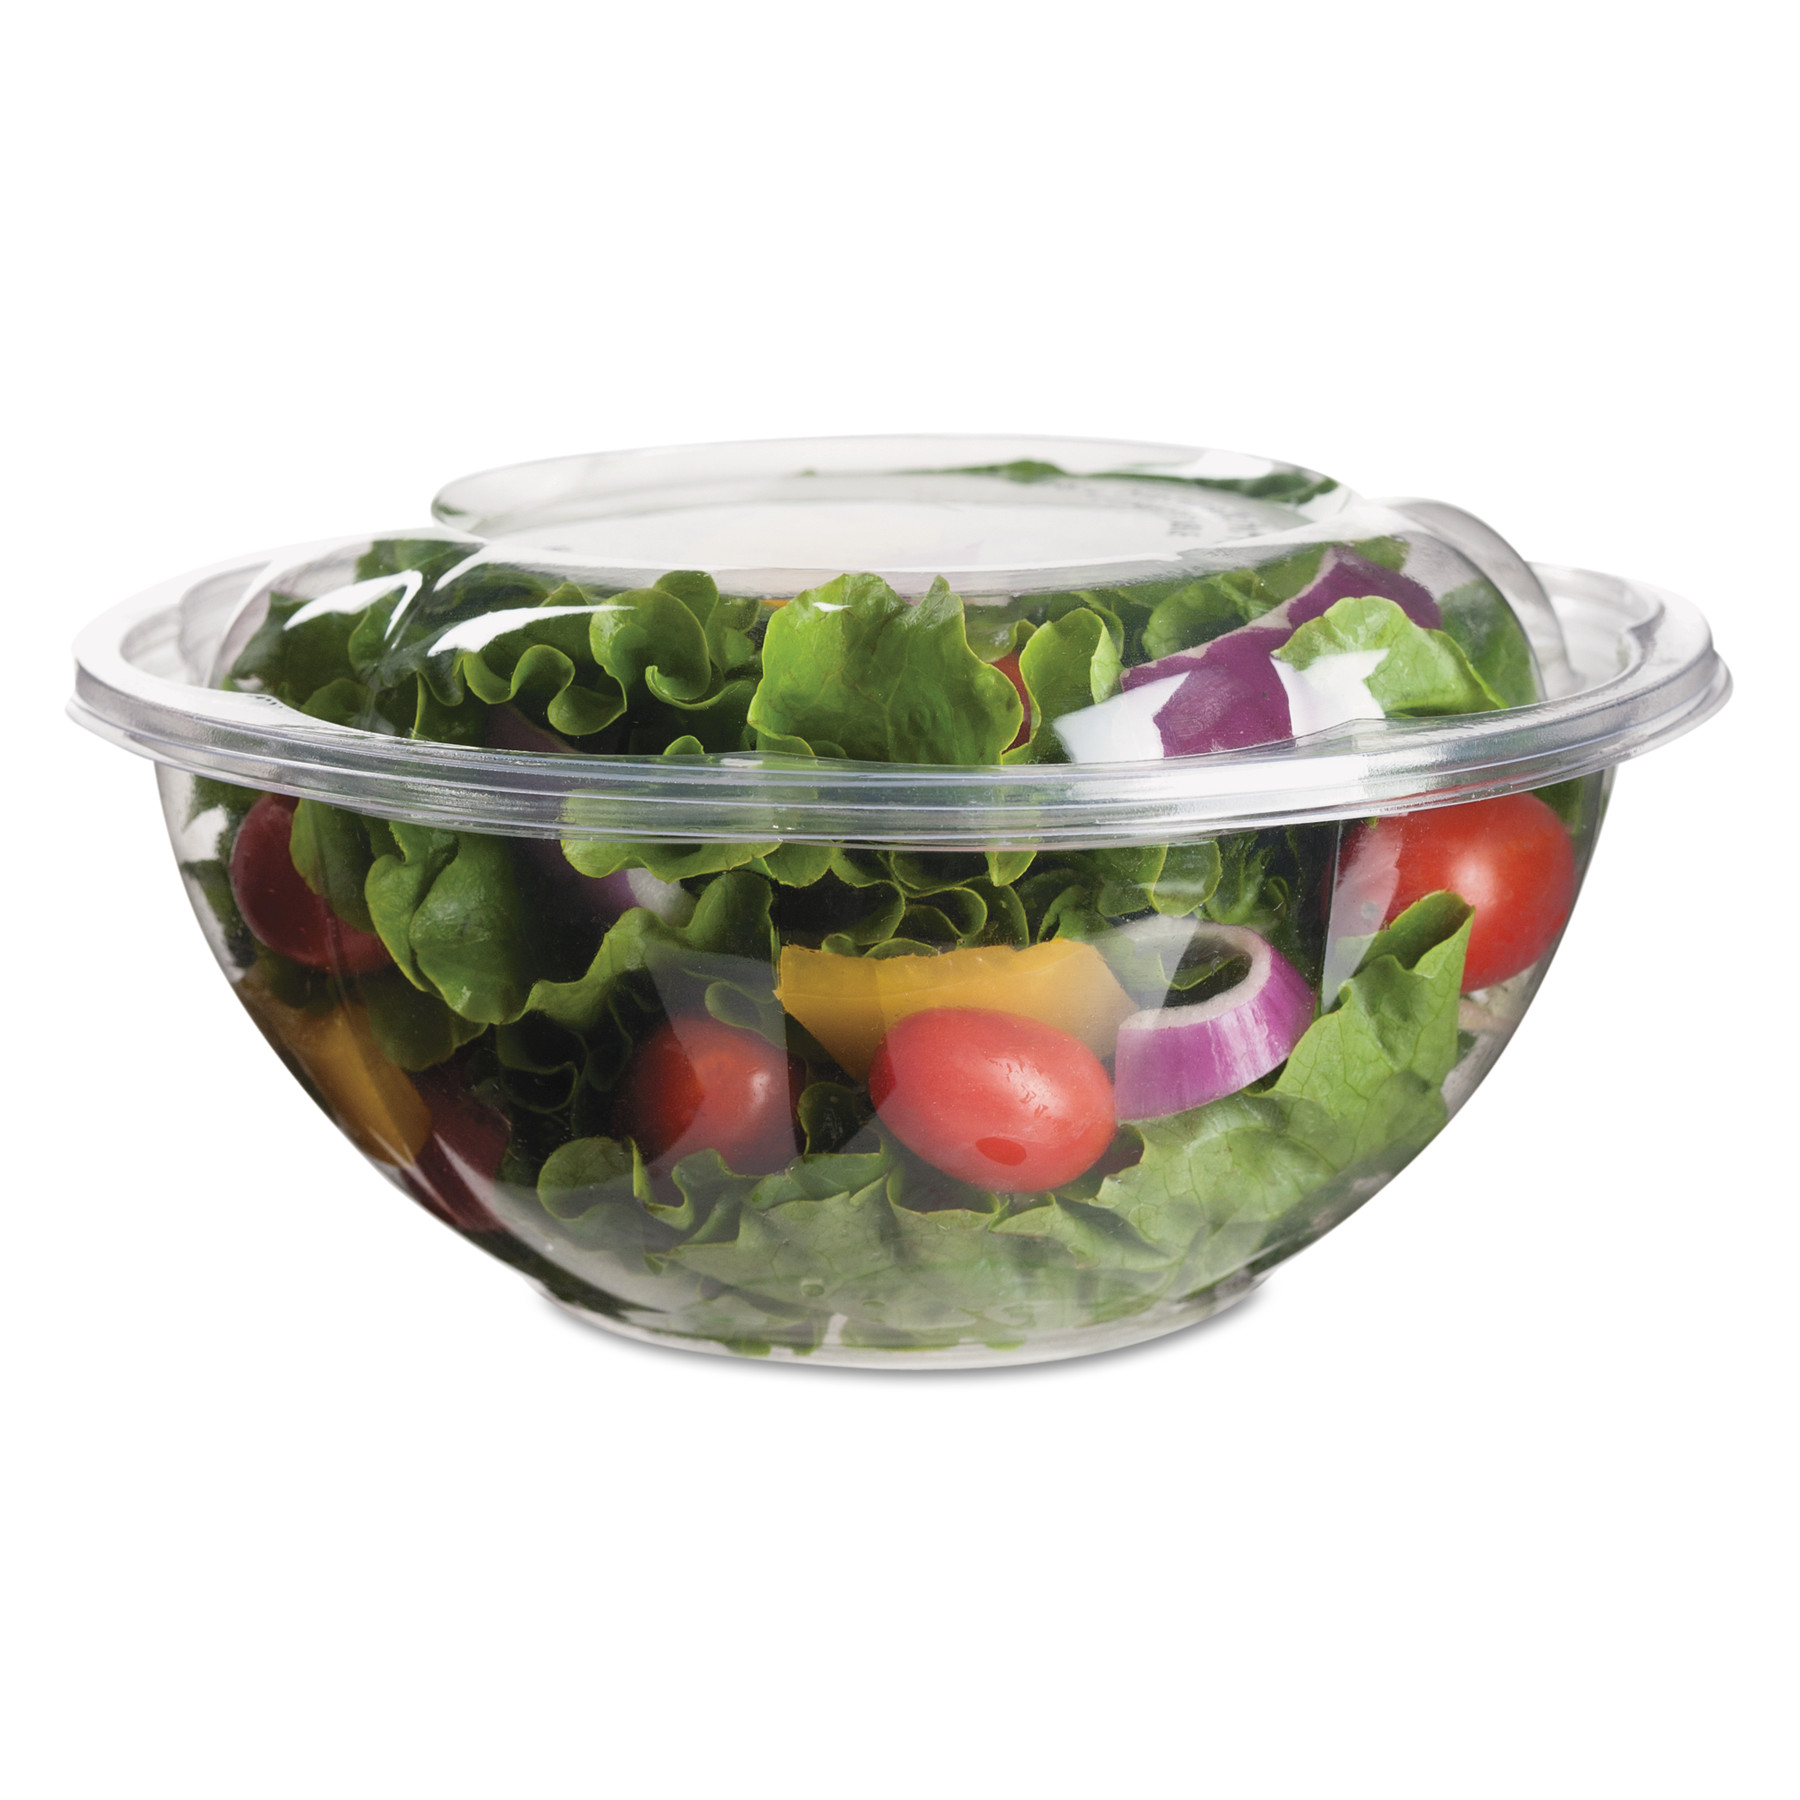 Eco-Products Renewable & Compostable Salad Bowls w/ Lids - 24oz., 50/PK, 3 PK/CT